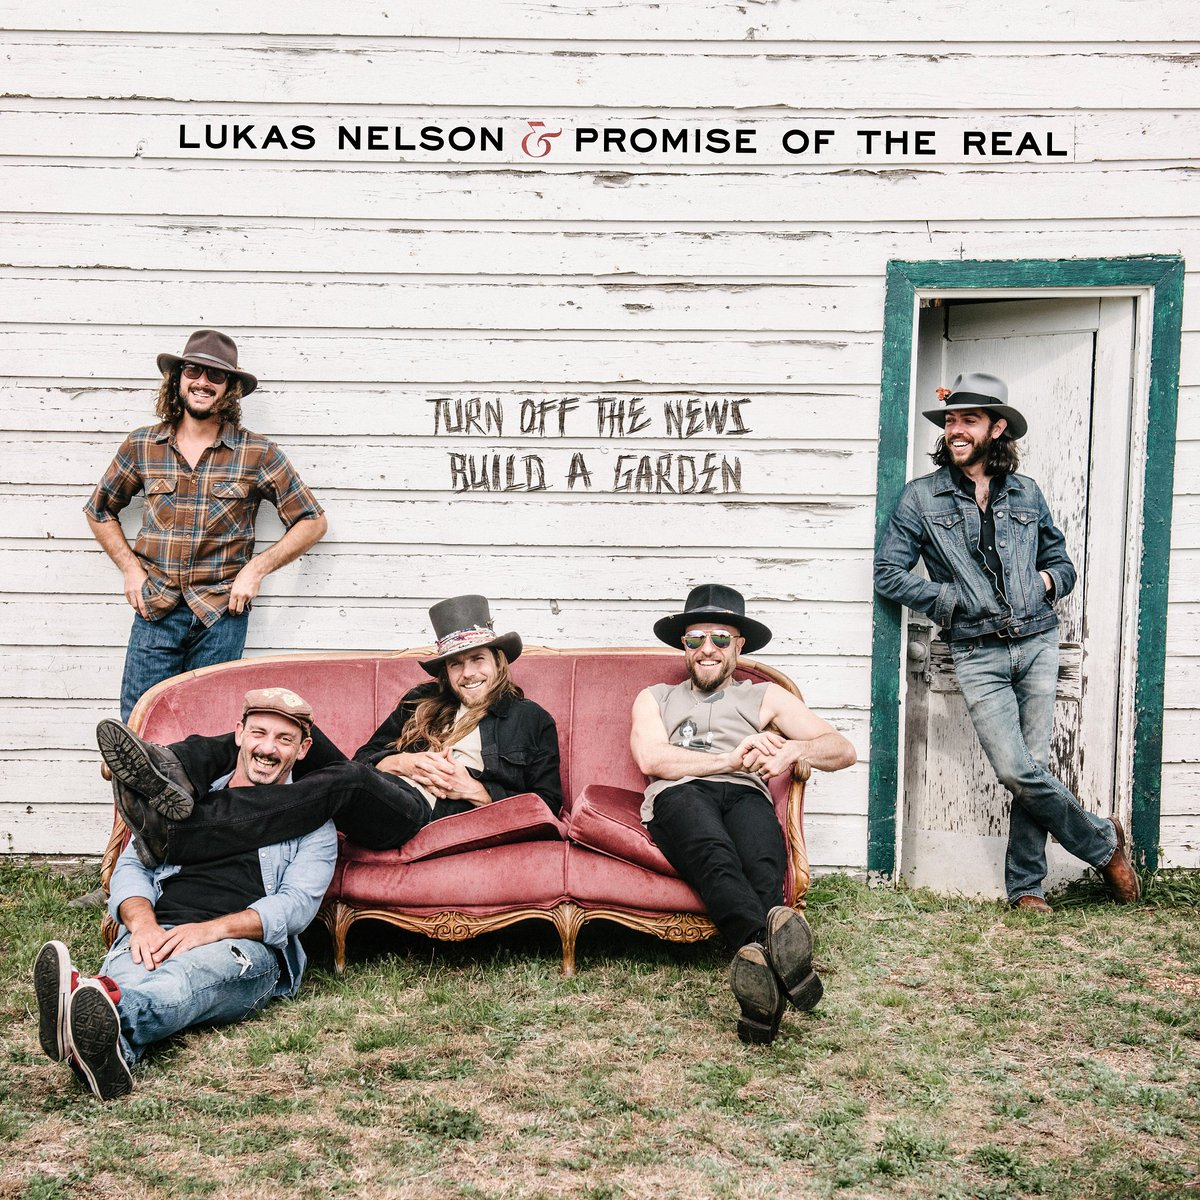 Congrats to A STAR IS BORN collaborators @LukasNelson  & Promise of the Real on the release of their great new album Turn Off The News (Build A Garden) out today! Get it here:  http://smarturl.it/LNTurnOffTheNews  …